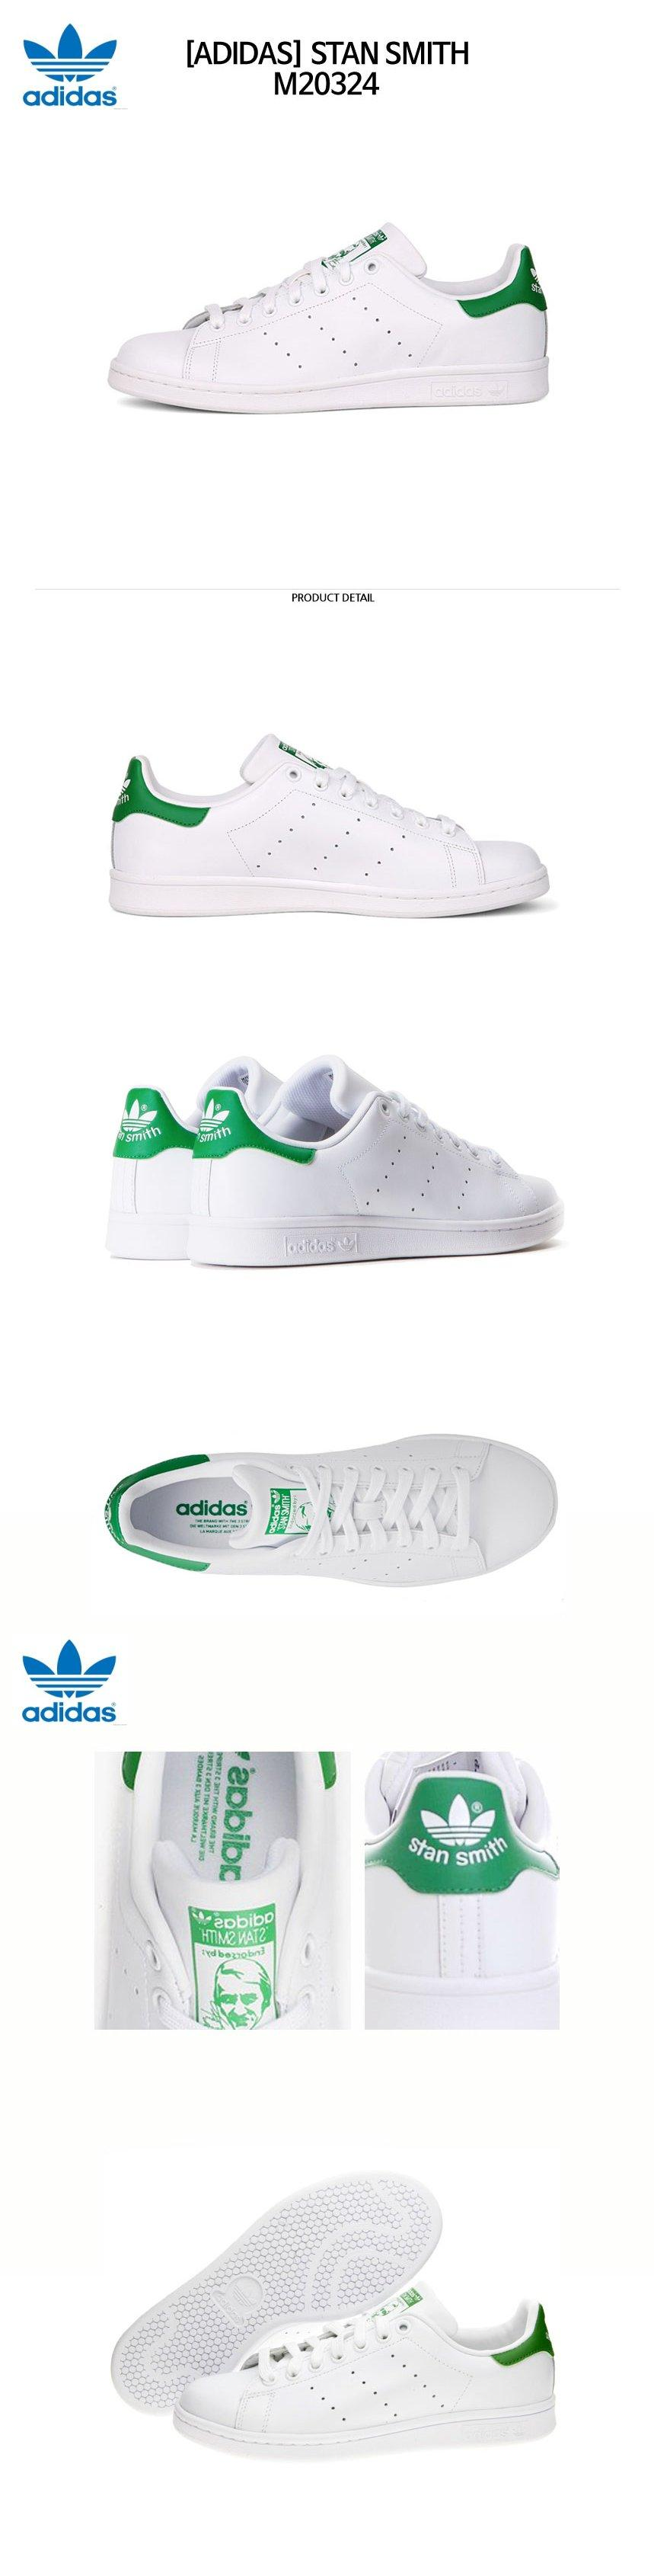 brand new 22c07 0e3c5 Product details of Adidas Unisex Originals Stan Smith M20324 Shoes Express